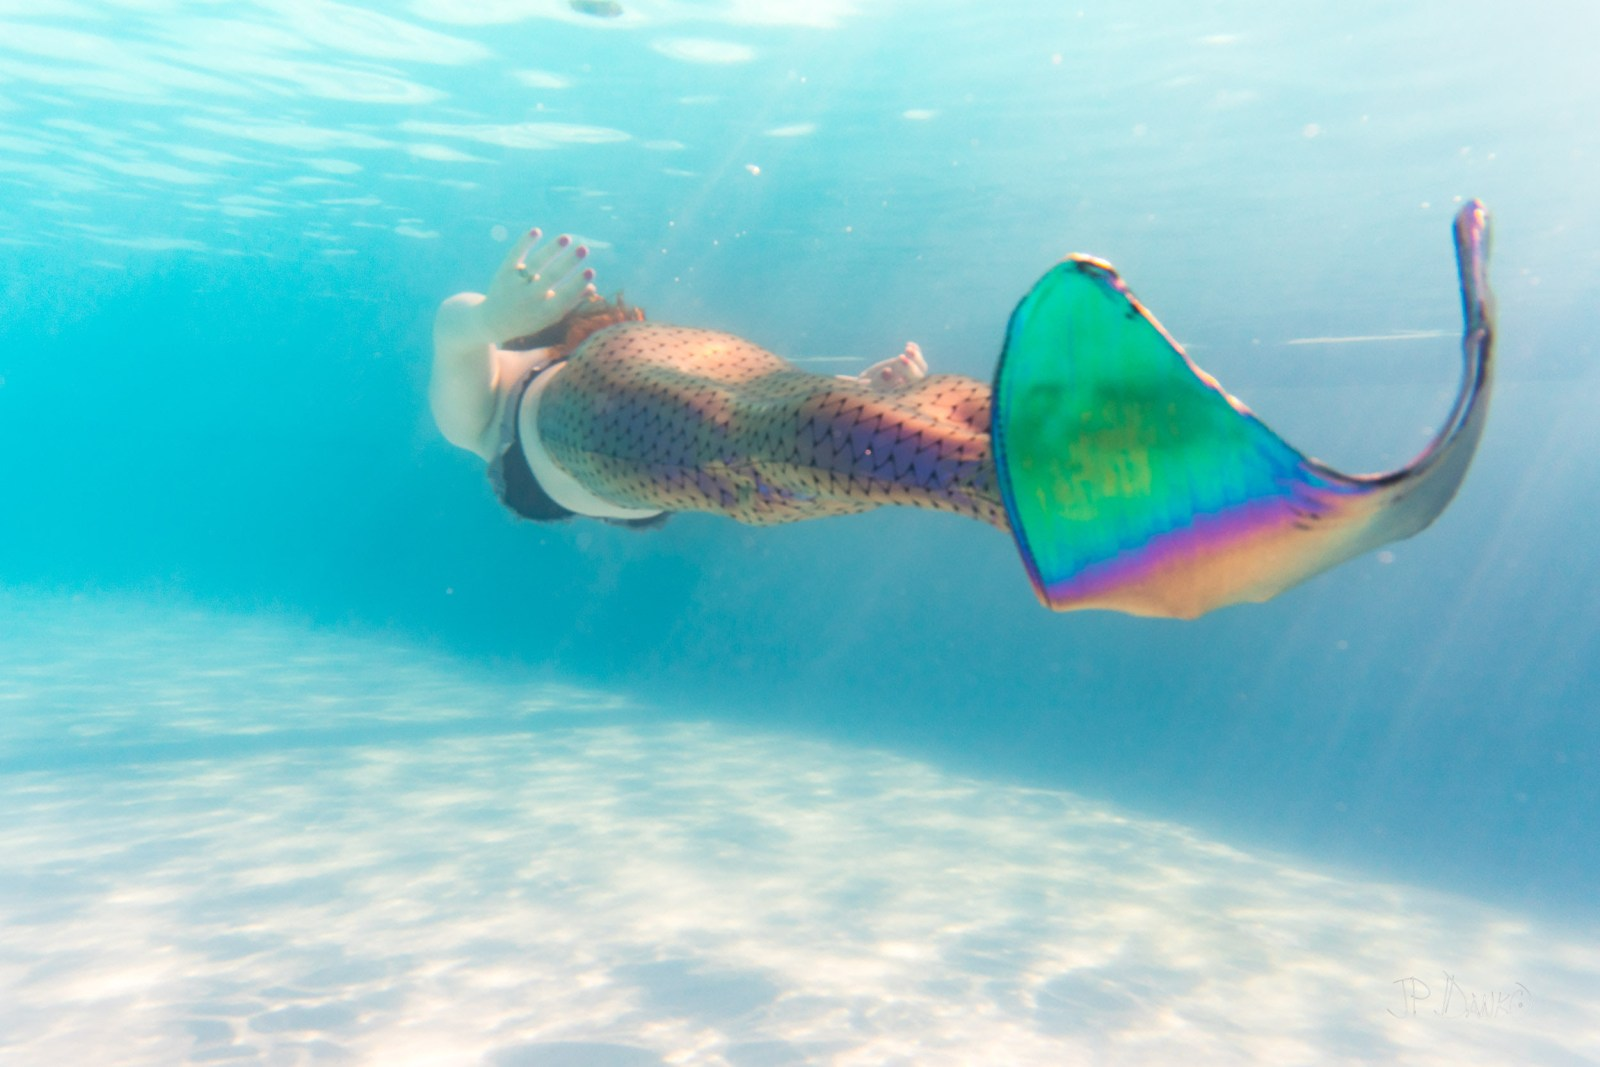 Underwater view of woman on holiday swimming in pool with colorful iridescent mermaid tail